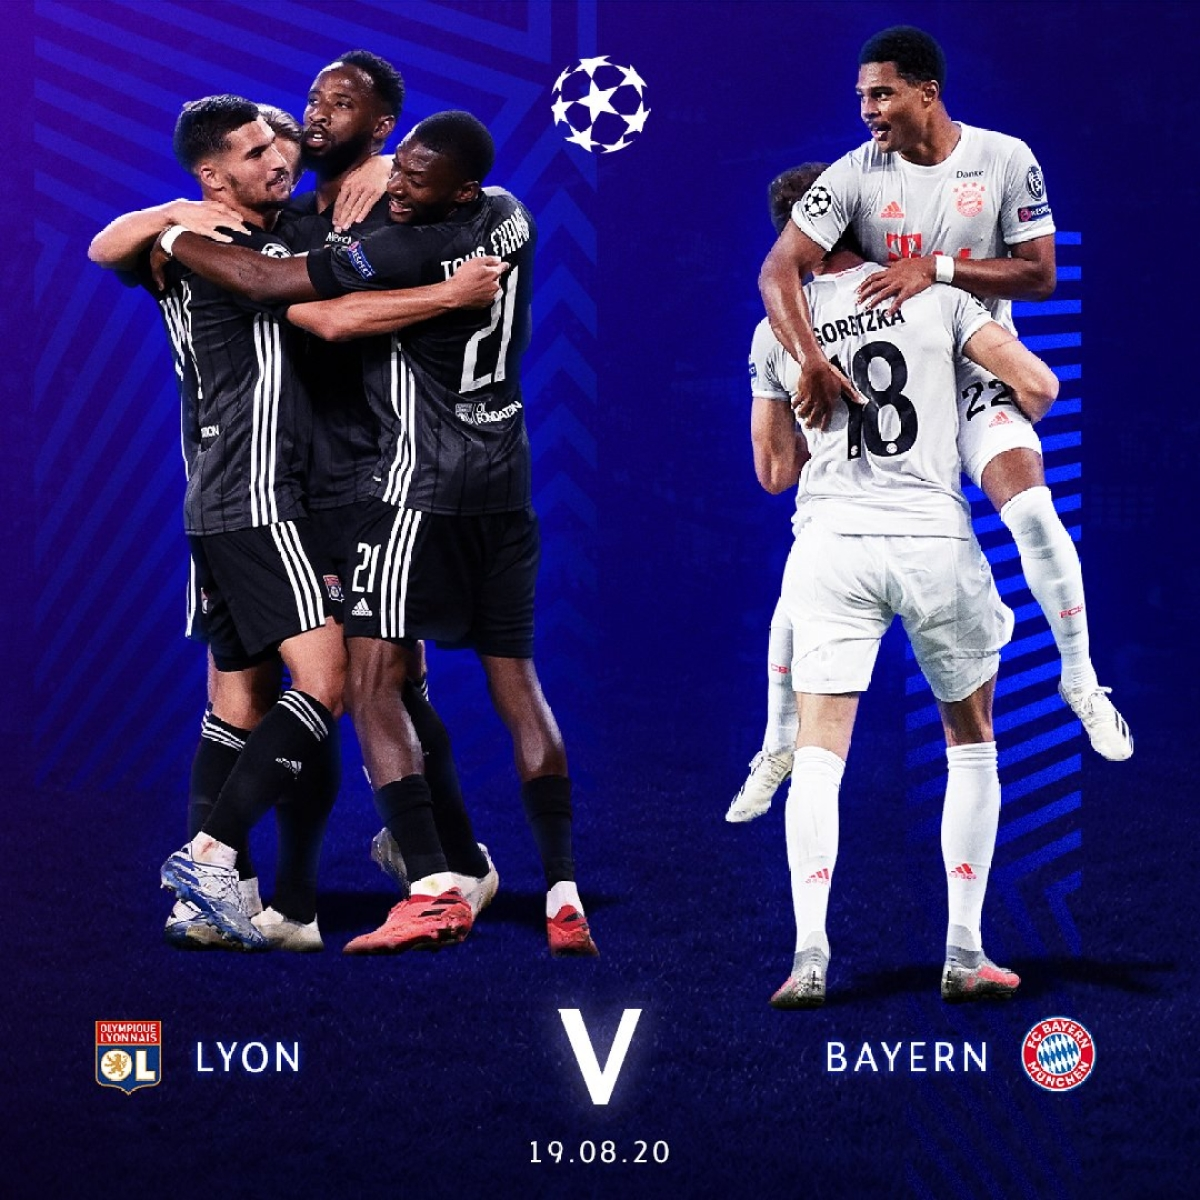 Bayern Munich vs Lyon: Where and when to watch the Champions League semi-final fixture live in India